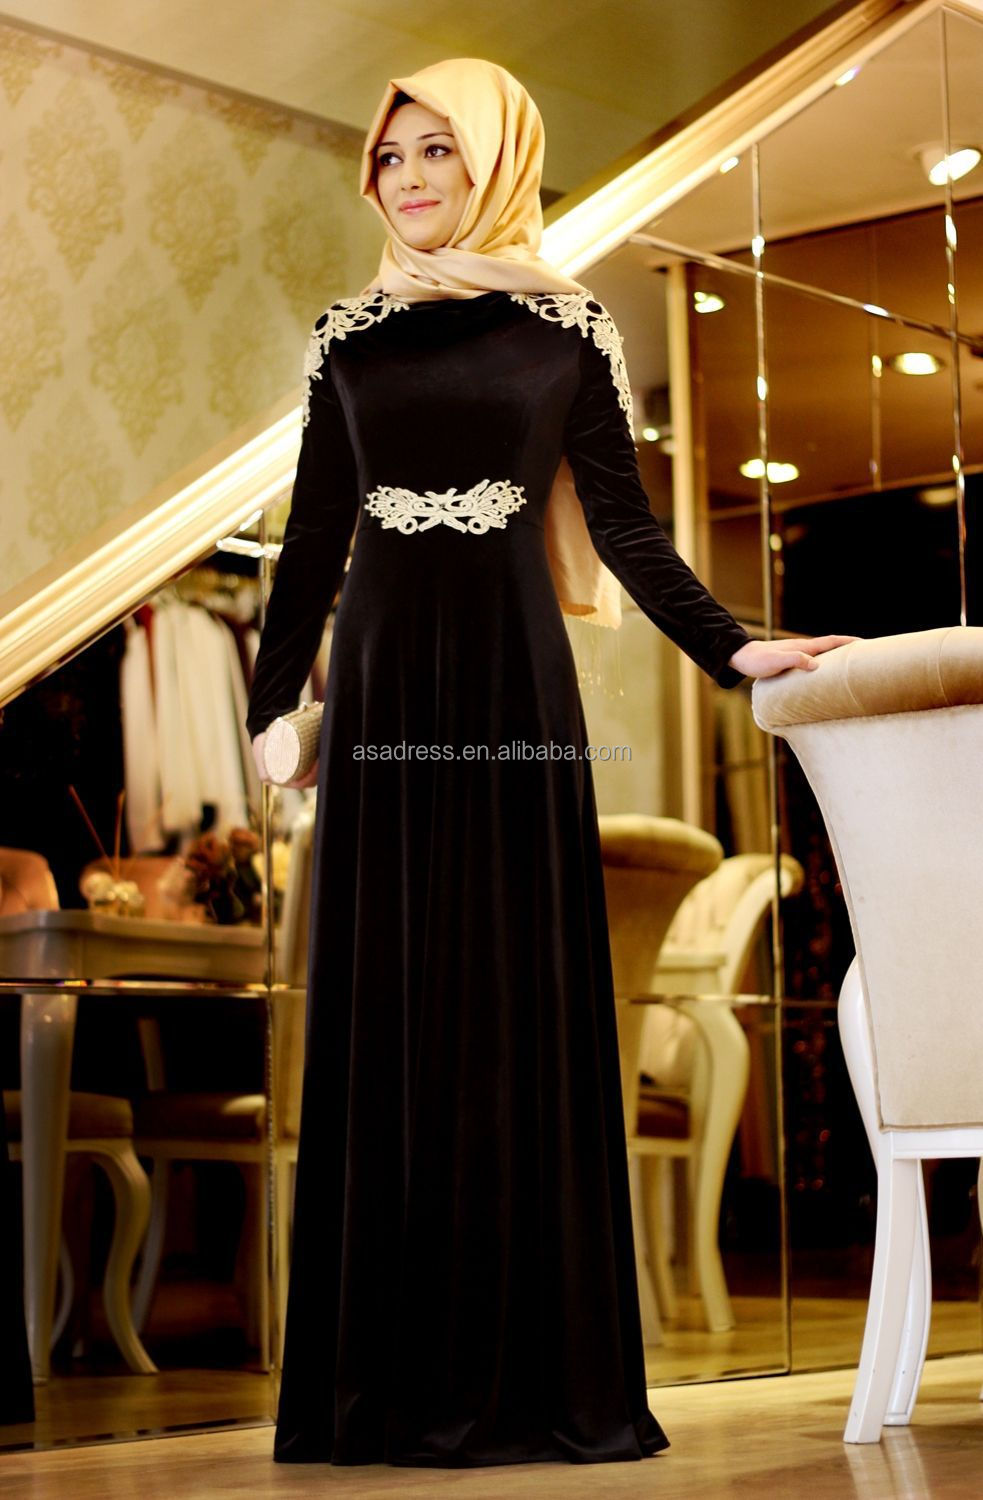 875feb577a795 ATE06 Latest Design Arabic Lady Gowns High Collar Long Sleeve Elegant  Appliqued Muslim Evening Dresses with